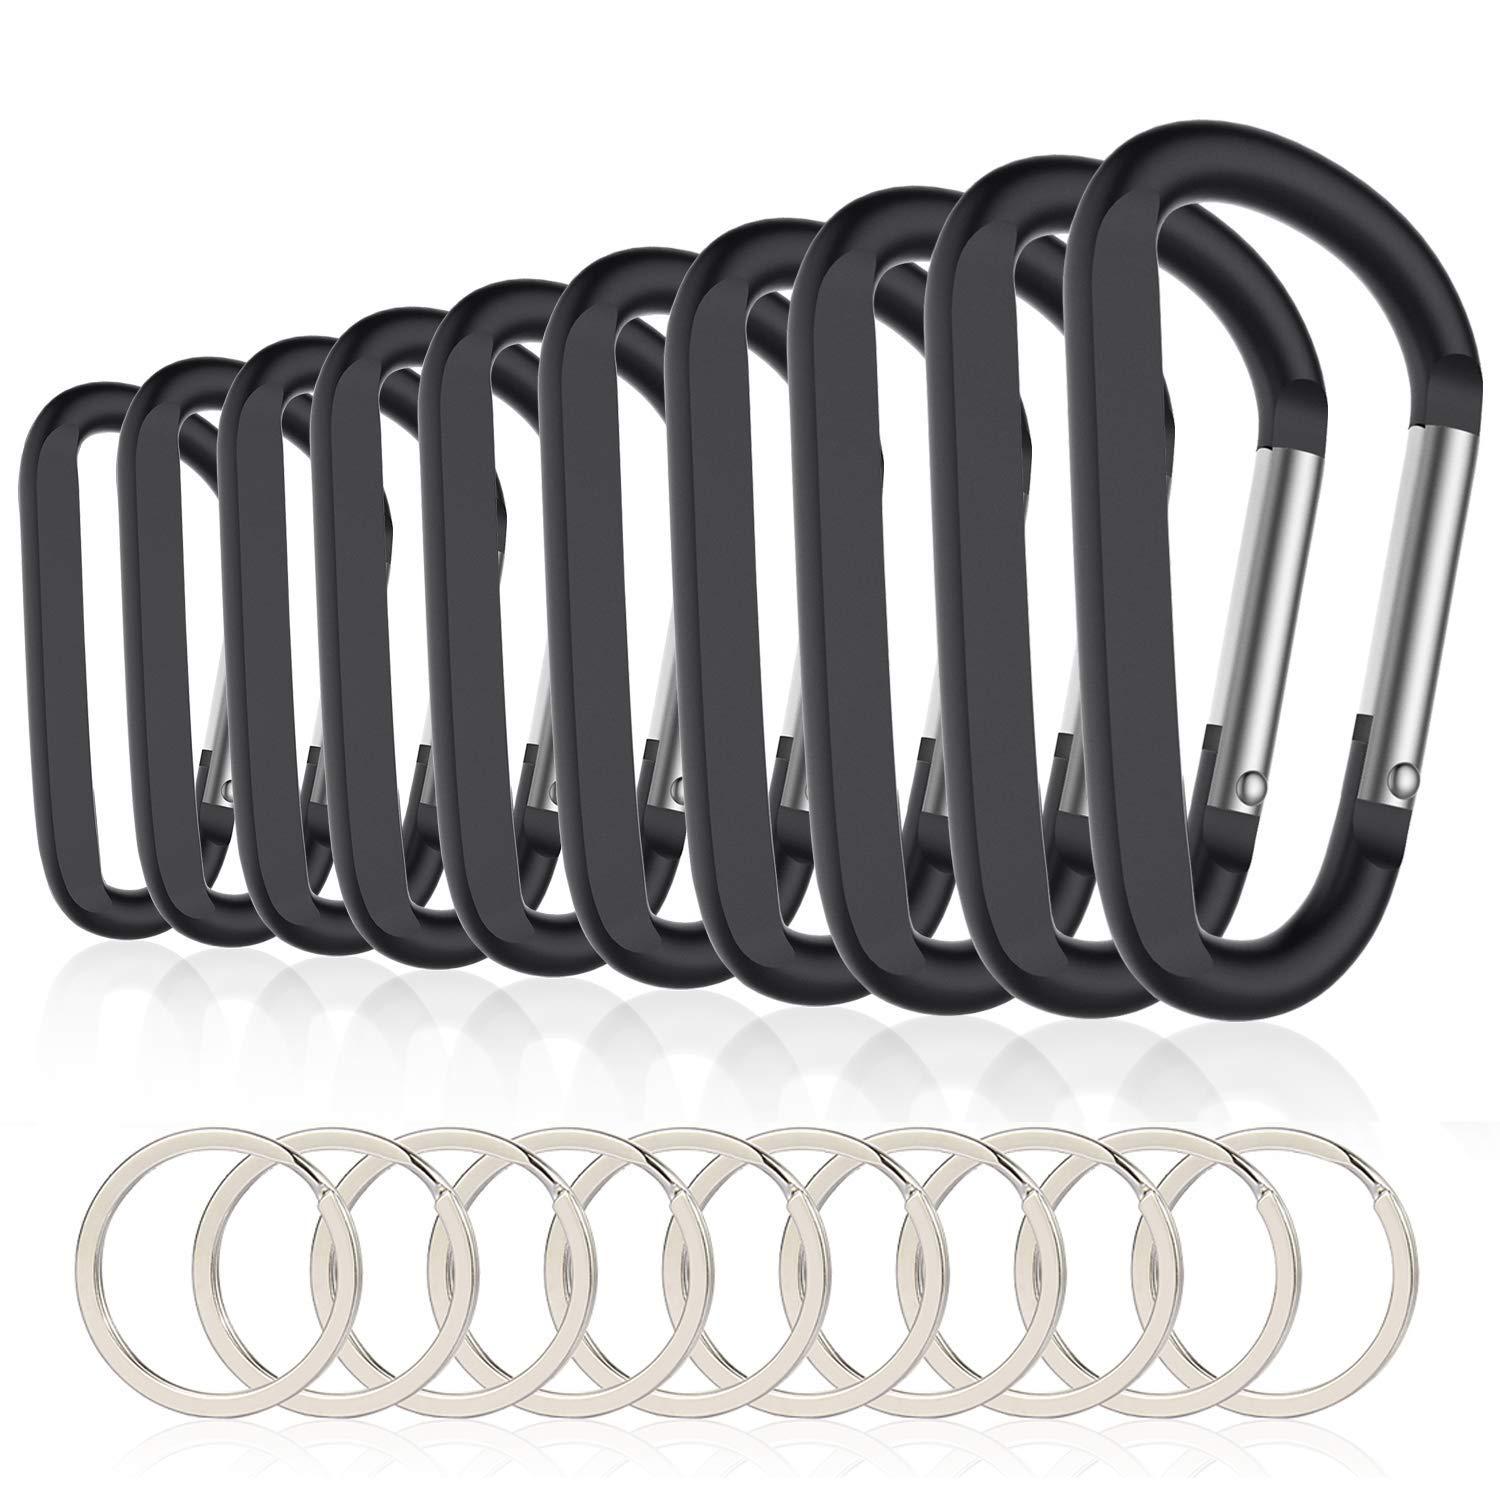 10PCS 3inch/8CM Aluminum Carabiner Clips,Premium Durable D-Ring Caribeaner With Keyring For Home RV Camping Fishing Hiking Tra